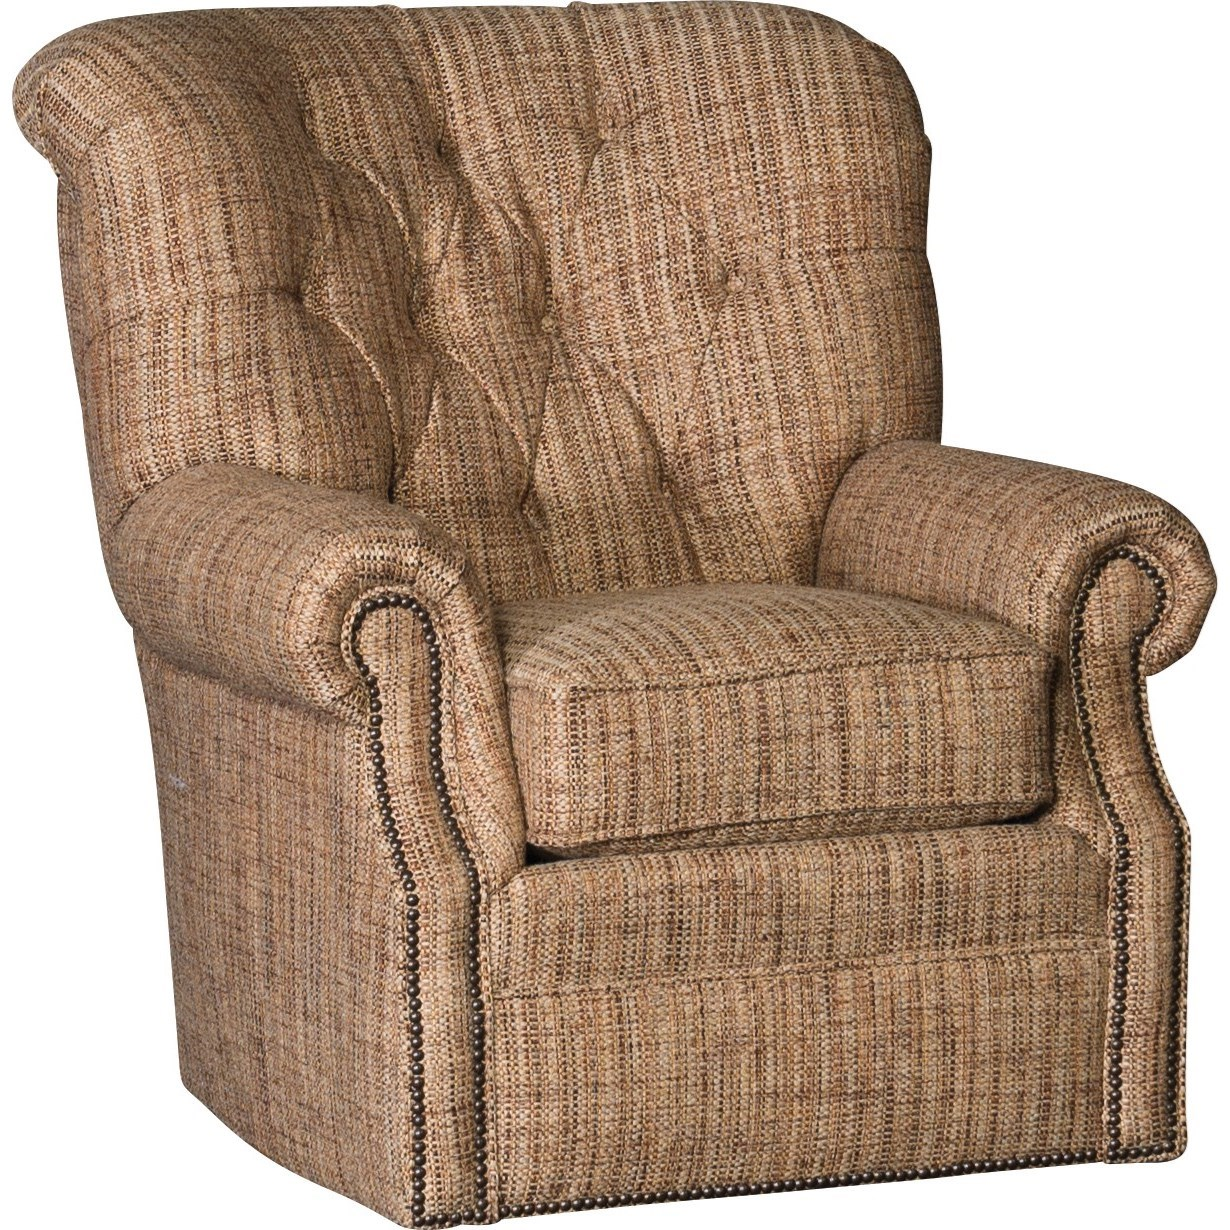 2220 Swivel Chair by Mayo at Wilson's Furniture